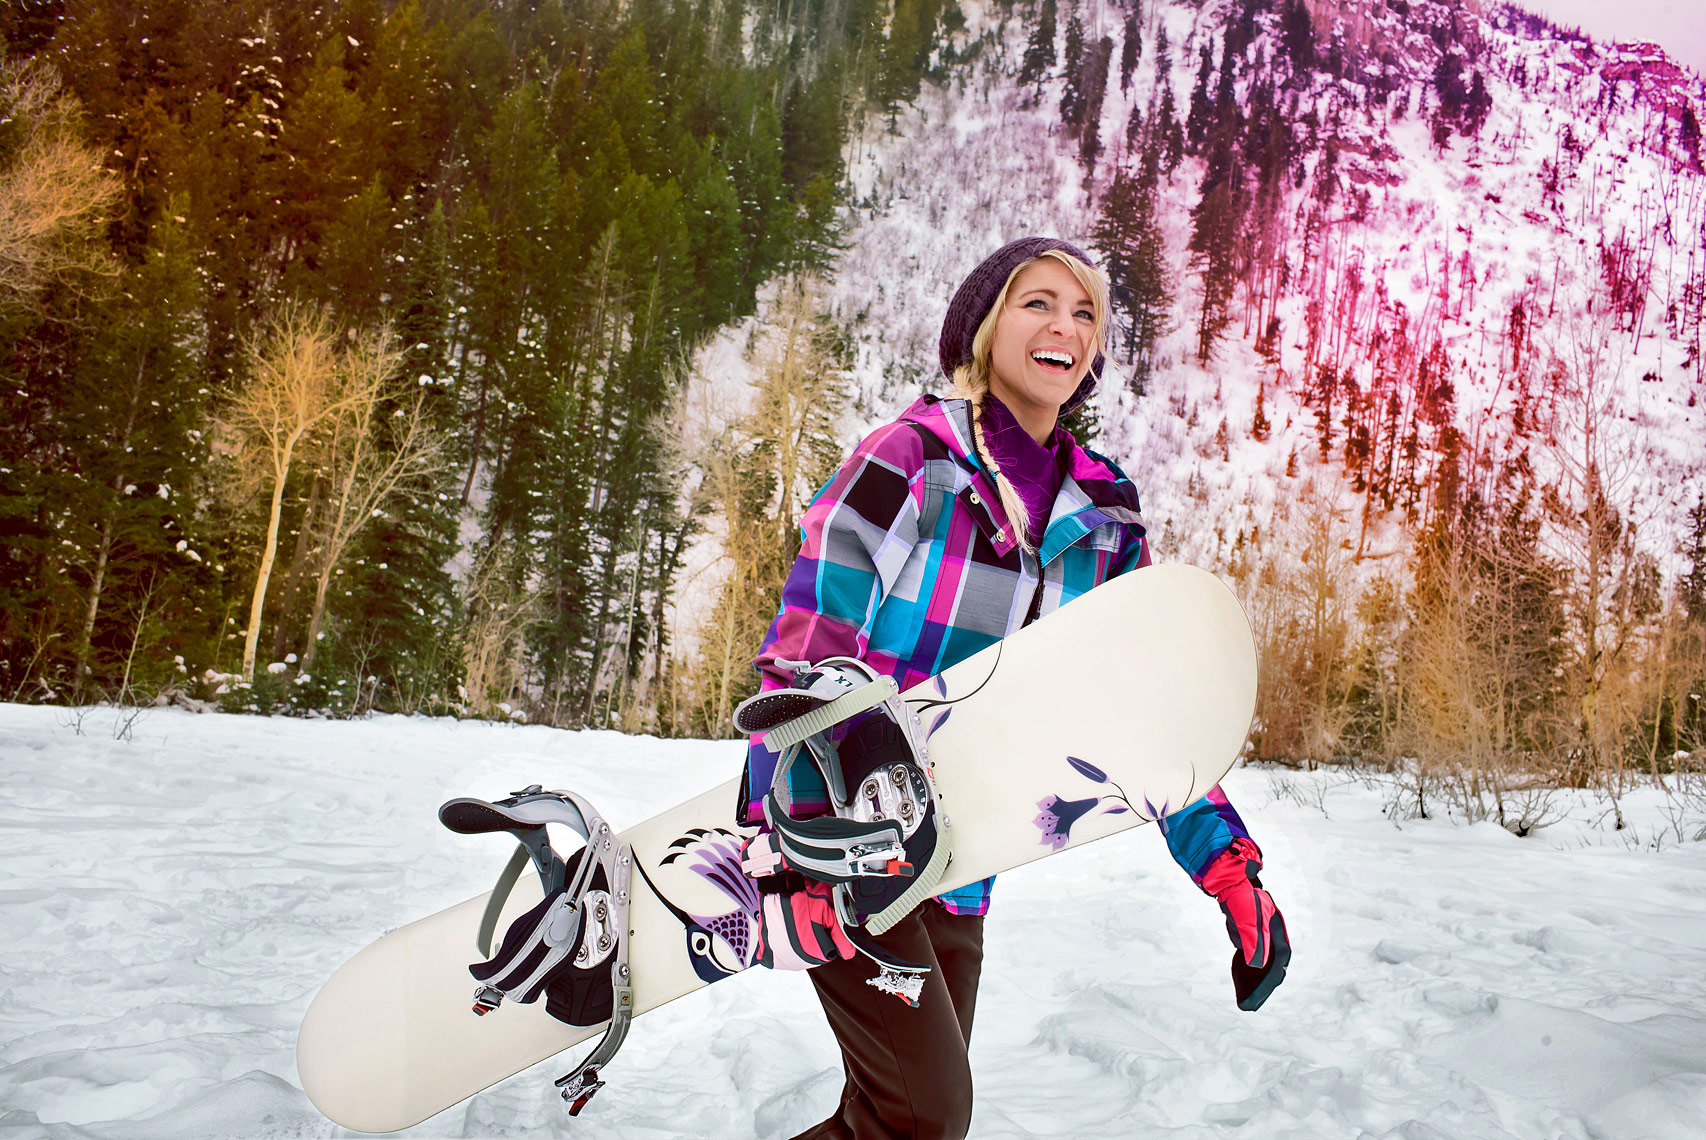 lifestyle-catalogue-photo-of-snowboarder-in-the-backcountry-ann-arbor-photographer-scott-stewart